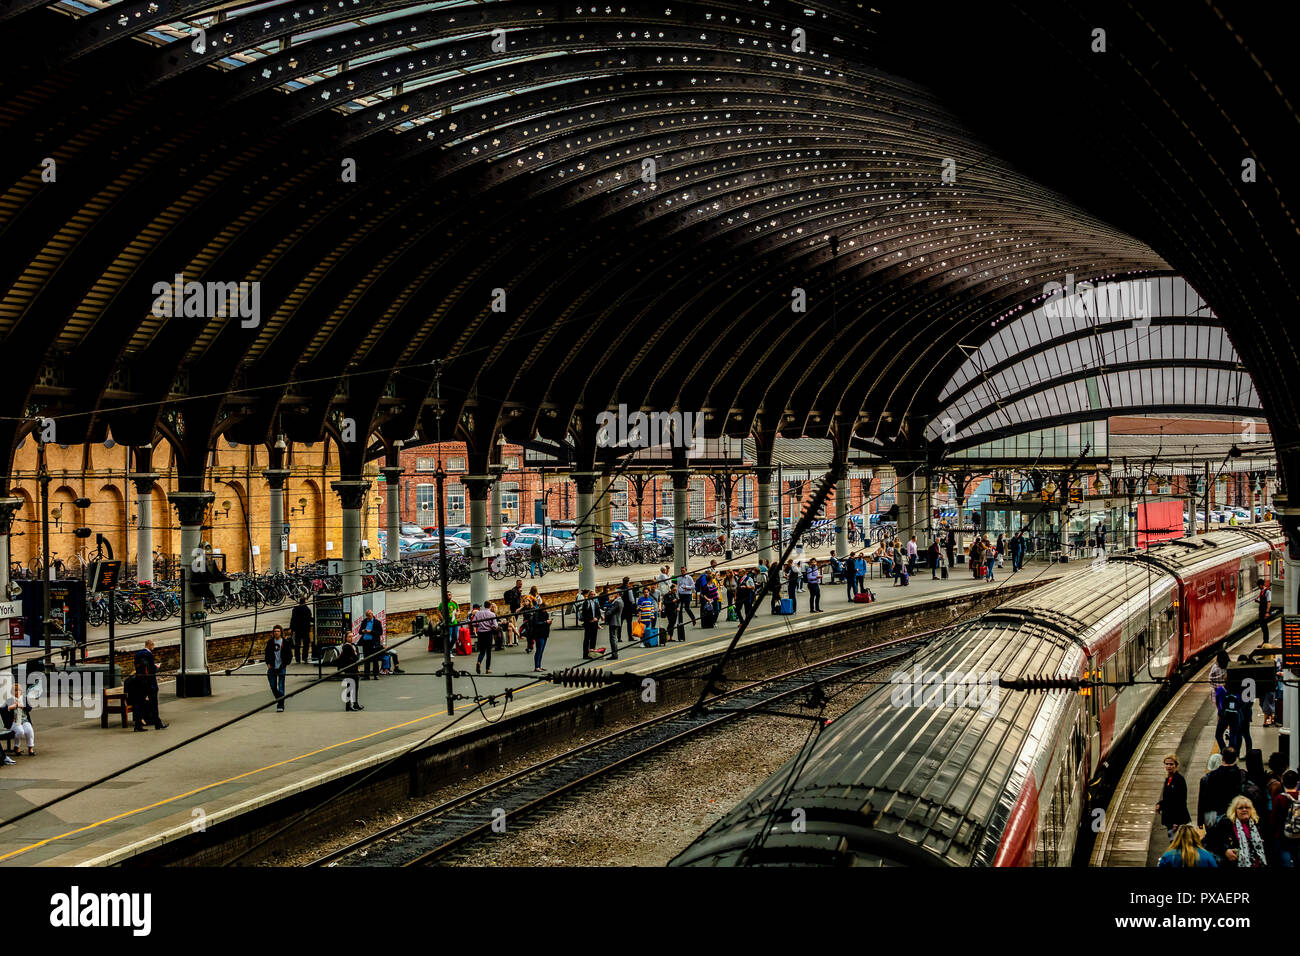 York, UK - Aug 28 2018: York Railway Station curved architectural details and station platform with trains and commuters - Stock Image